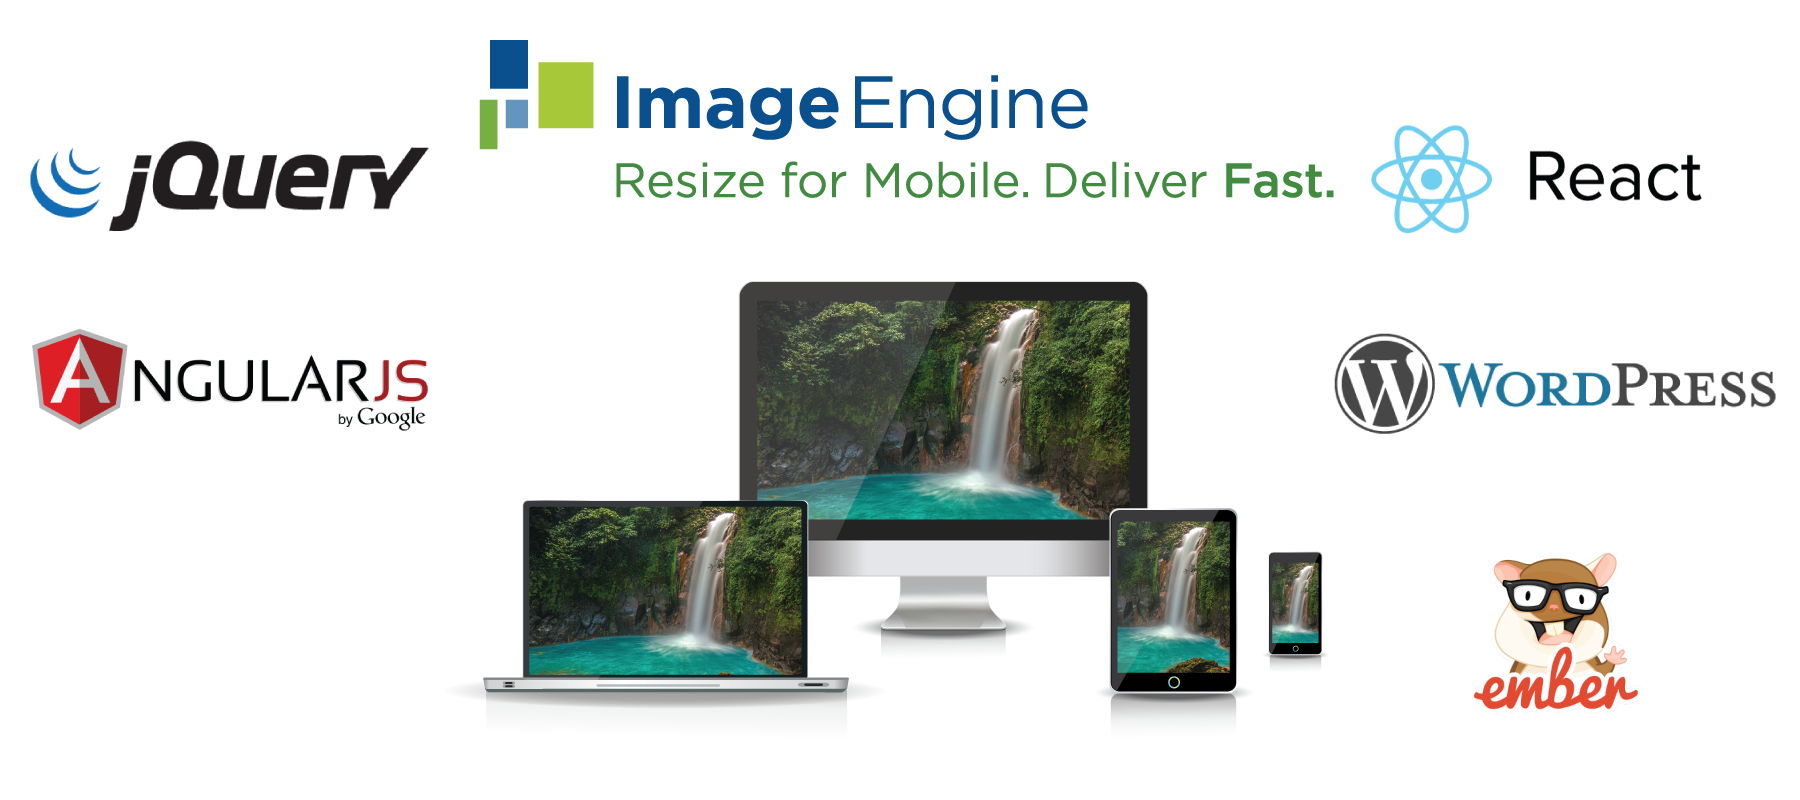 ImageEngine-Addins